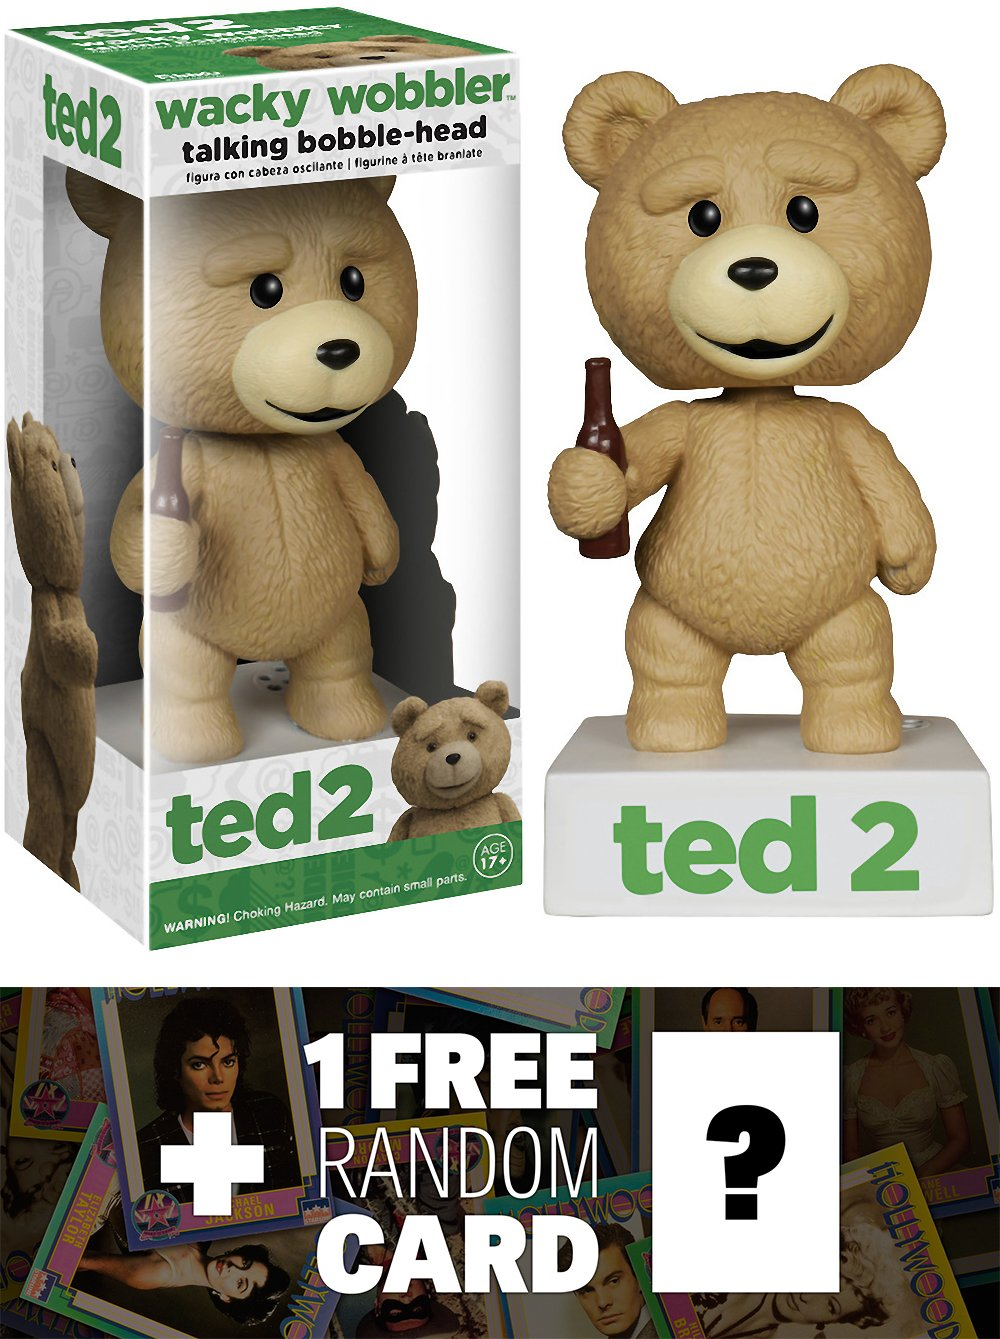 Talking Ted: Ted 2 x Wacky Wobblers Bobble Head Figure + 1 FREE Official Hollywood themed Trading Card Bundle [59101] B01BLLTGU6